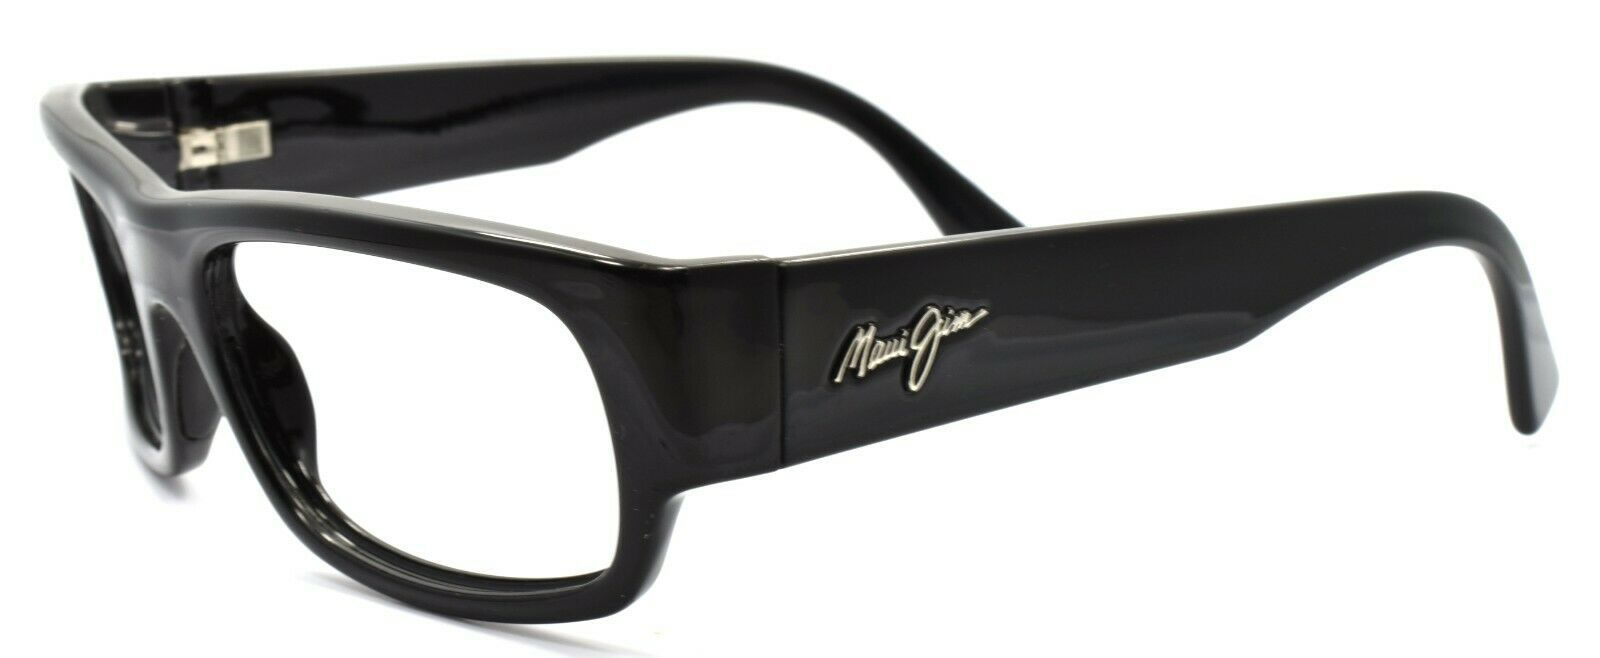 Maui Jim MJ250-02 Lava Flow Sunglasses Gloss Black 58-18-120 FRAME ONLY